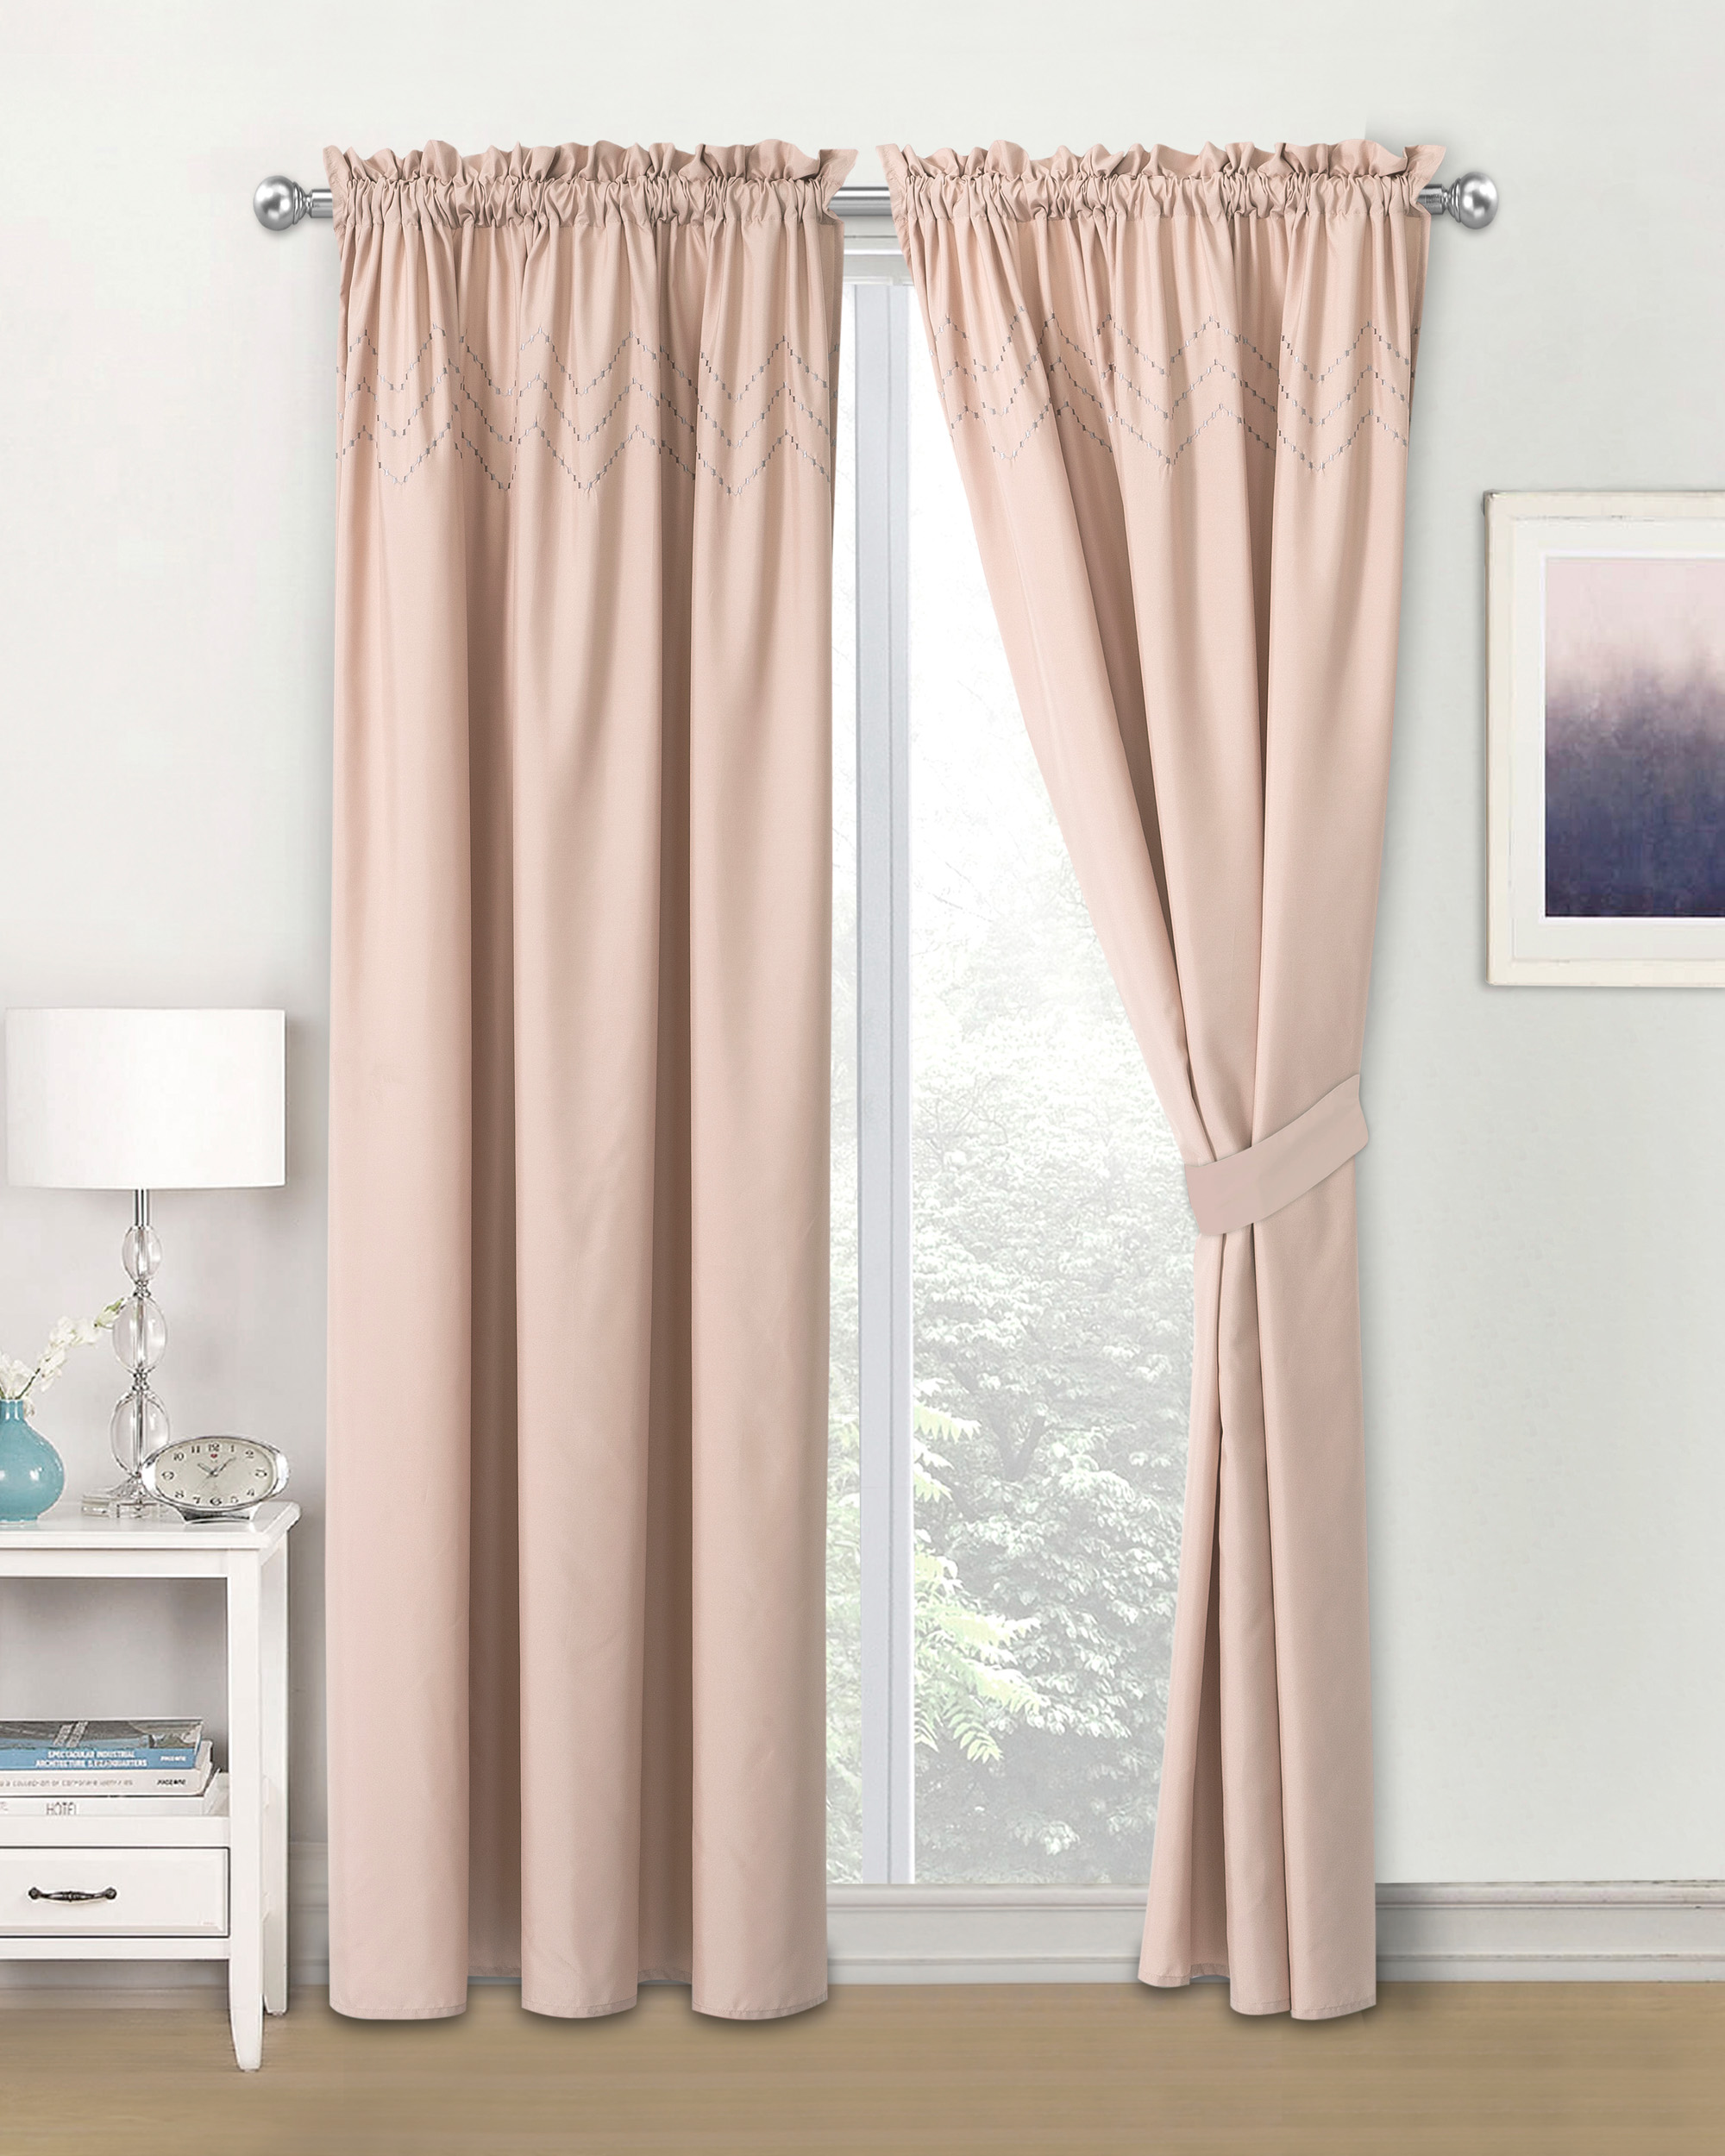 Hgmart Blackout Privacy Curtains Room Darkening Rod Pocket Embroidery Pleated Top And Tie Back Panels For Living Bedroom 58 X 84 Per Panel 2 Pcs Pink Walmart Com Walmart Com